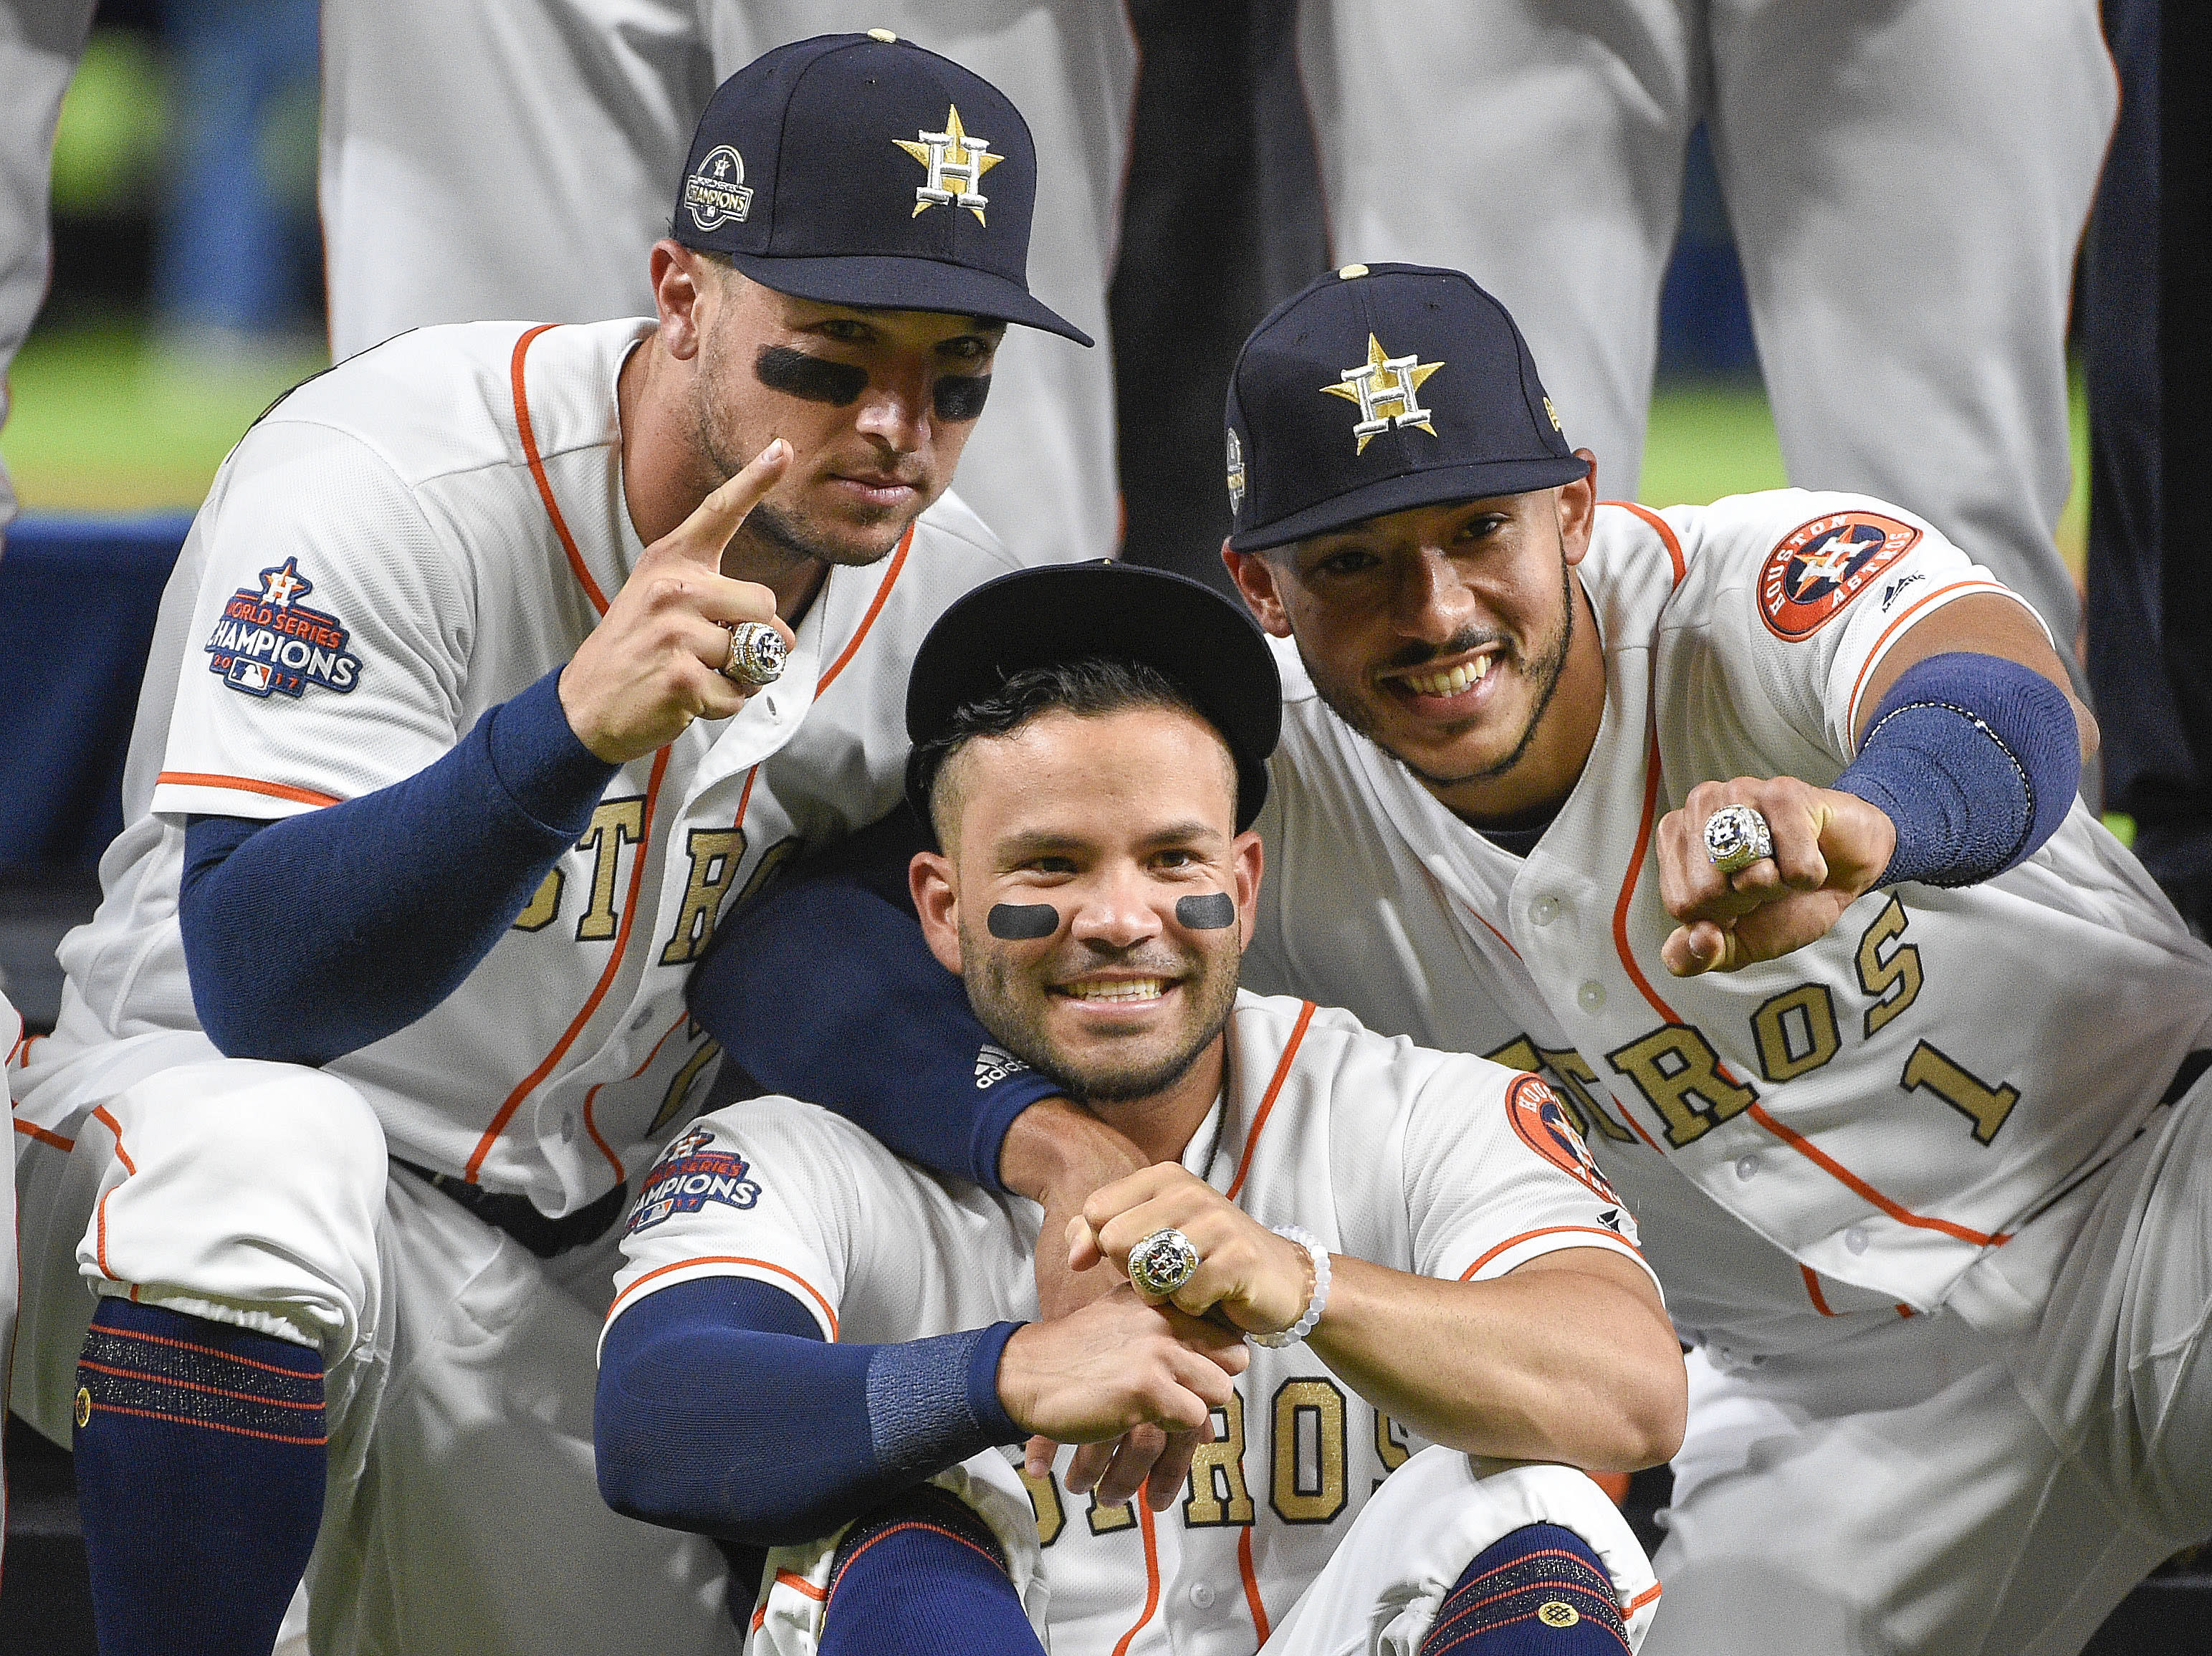 a11b41d34 Houston Astros received some really big championship rings